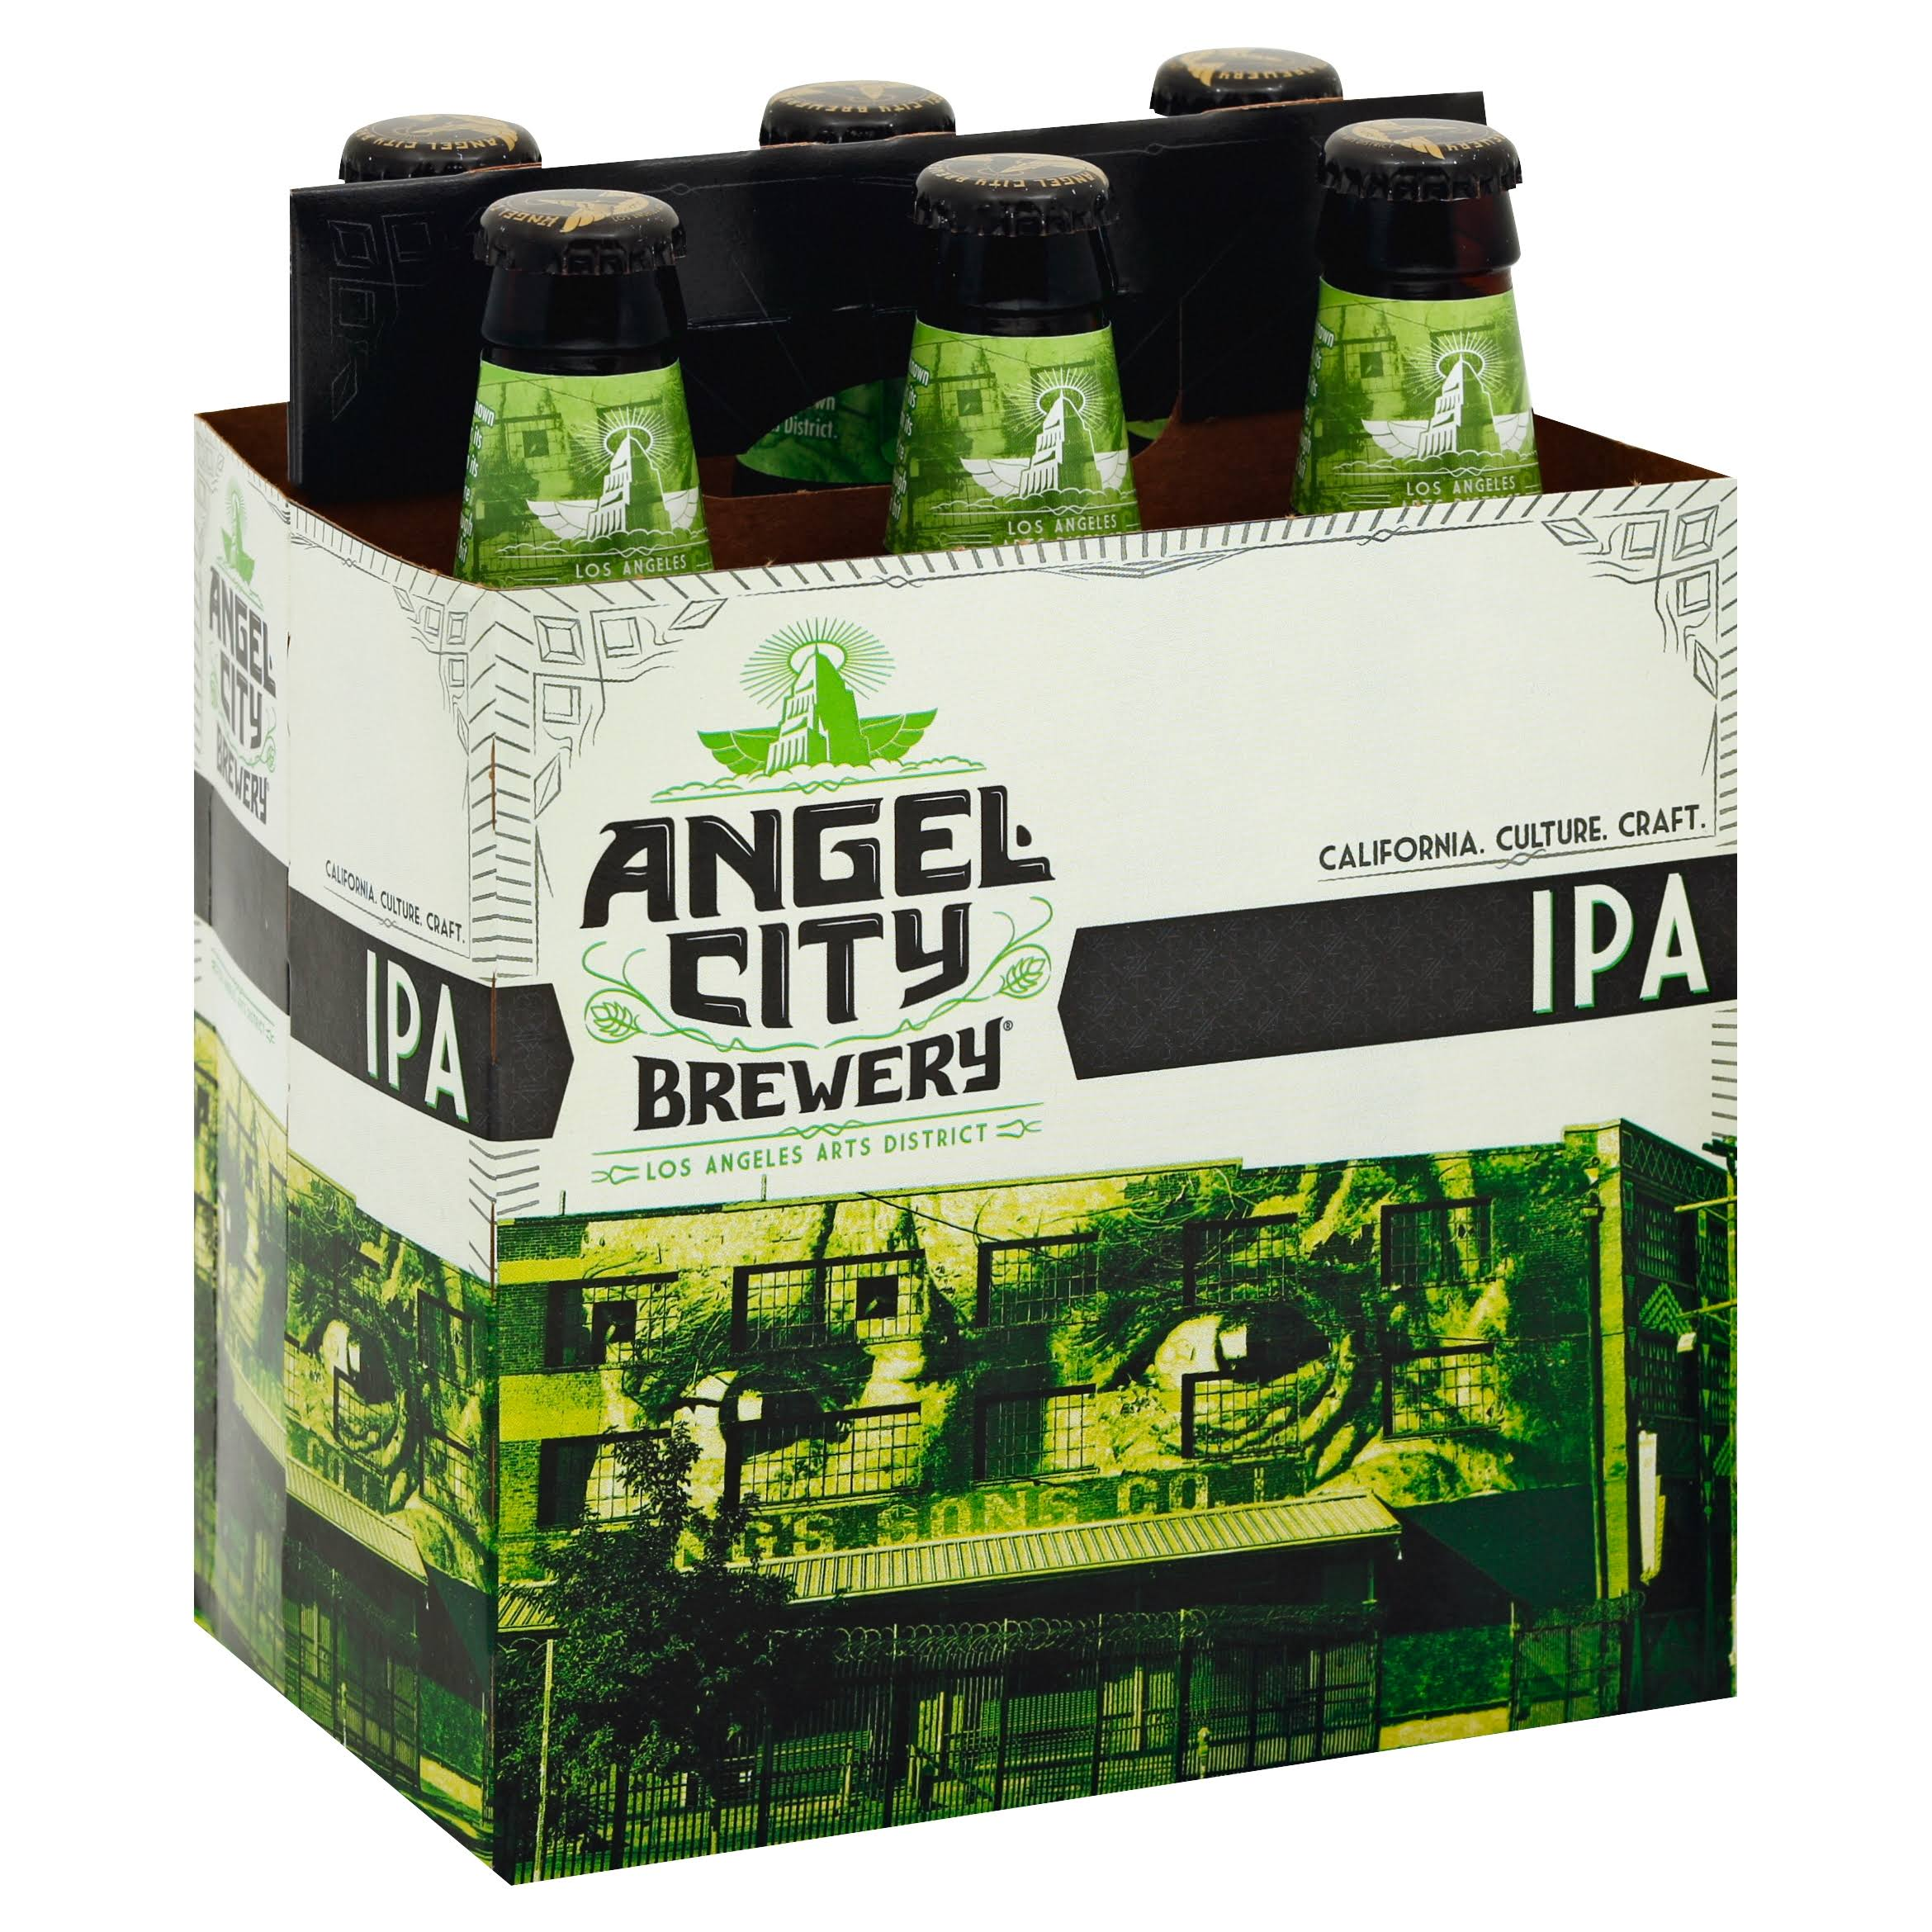 Angel City Angeleno IPA - 6 pack, 12 fl oz bottles